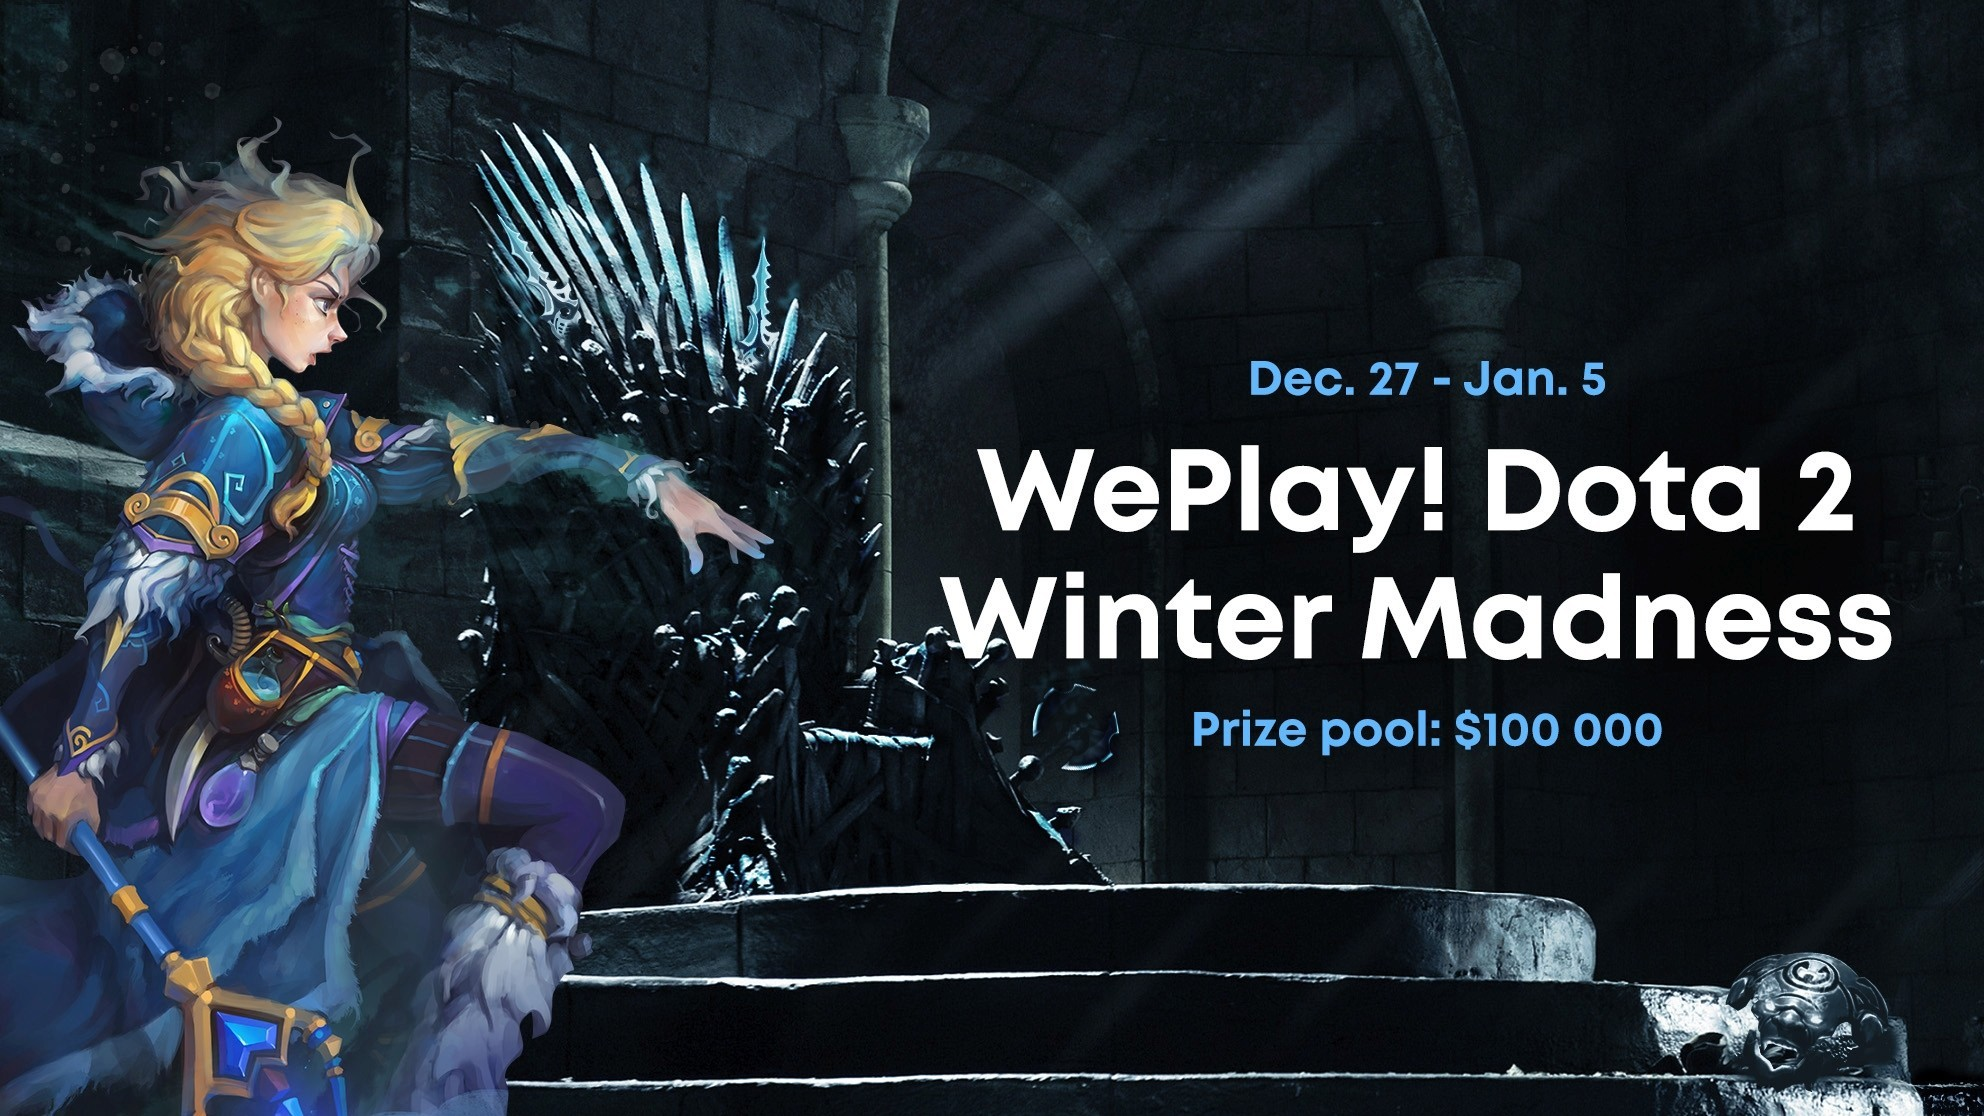 We are glad to announce the Winter Madness Dota 2 tournament